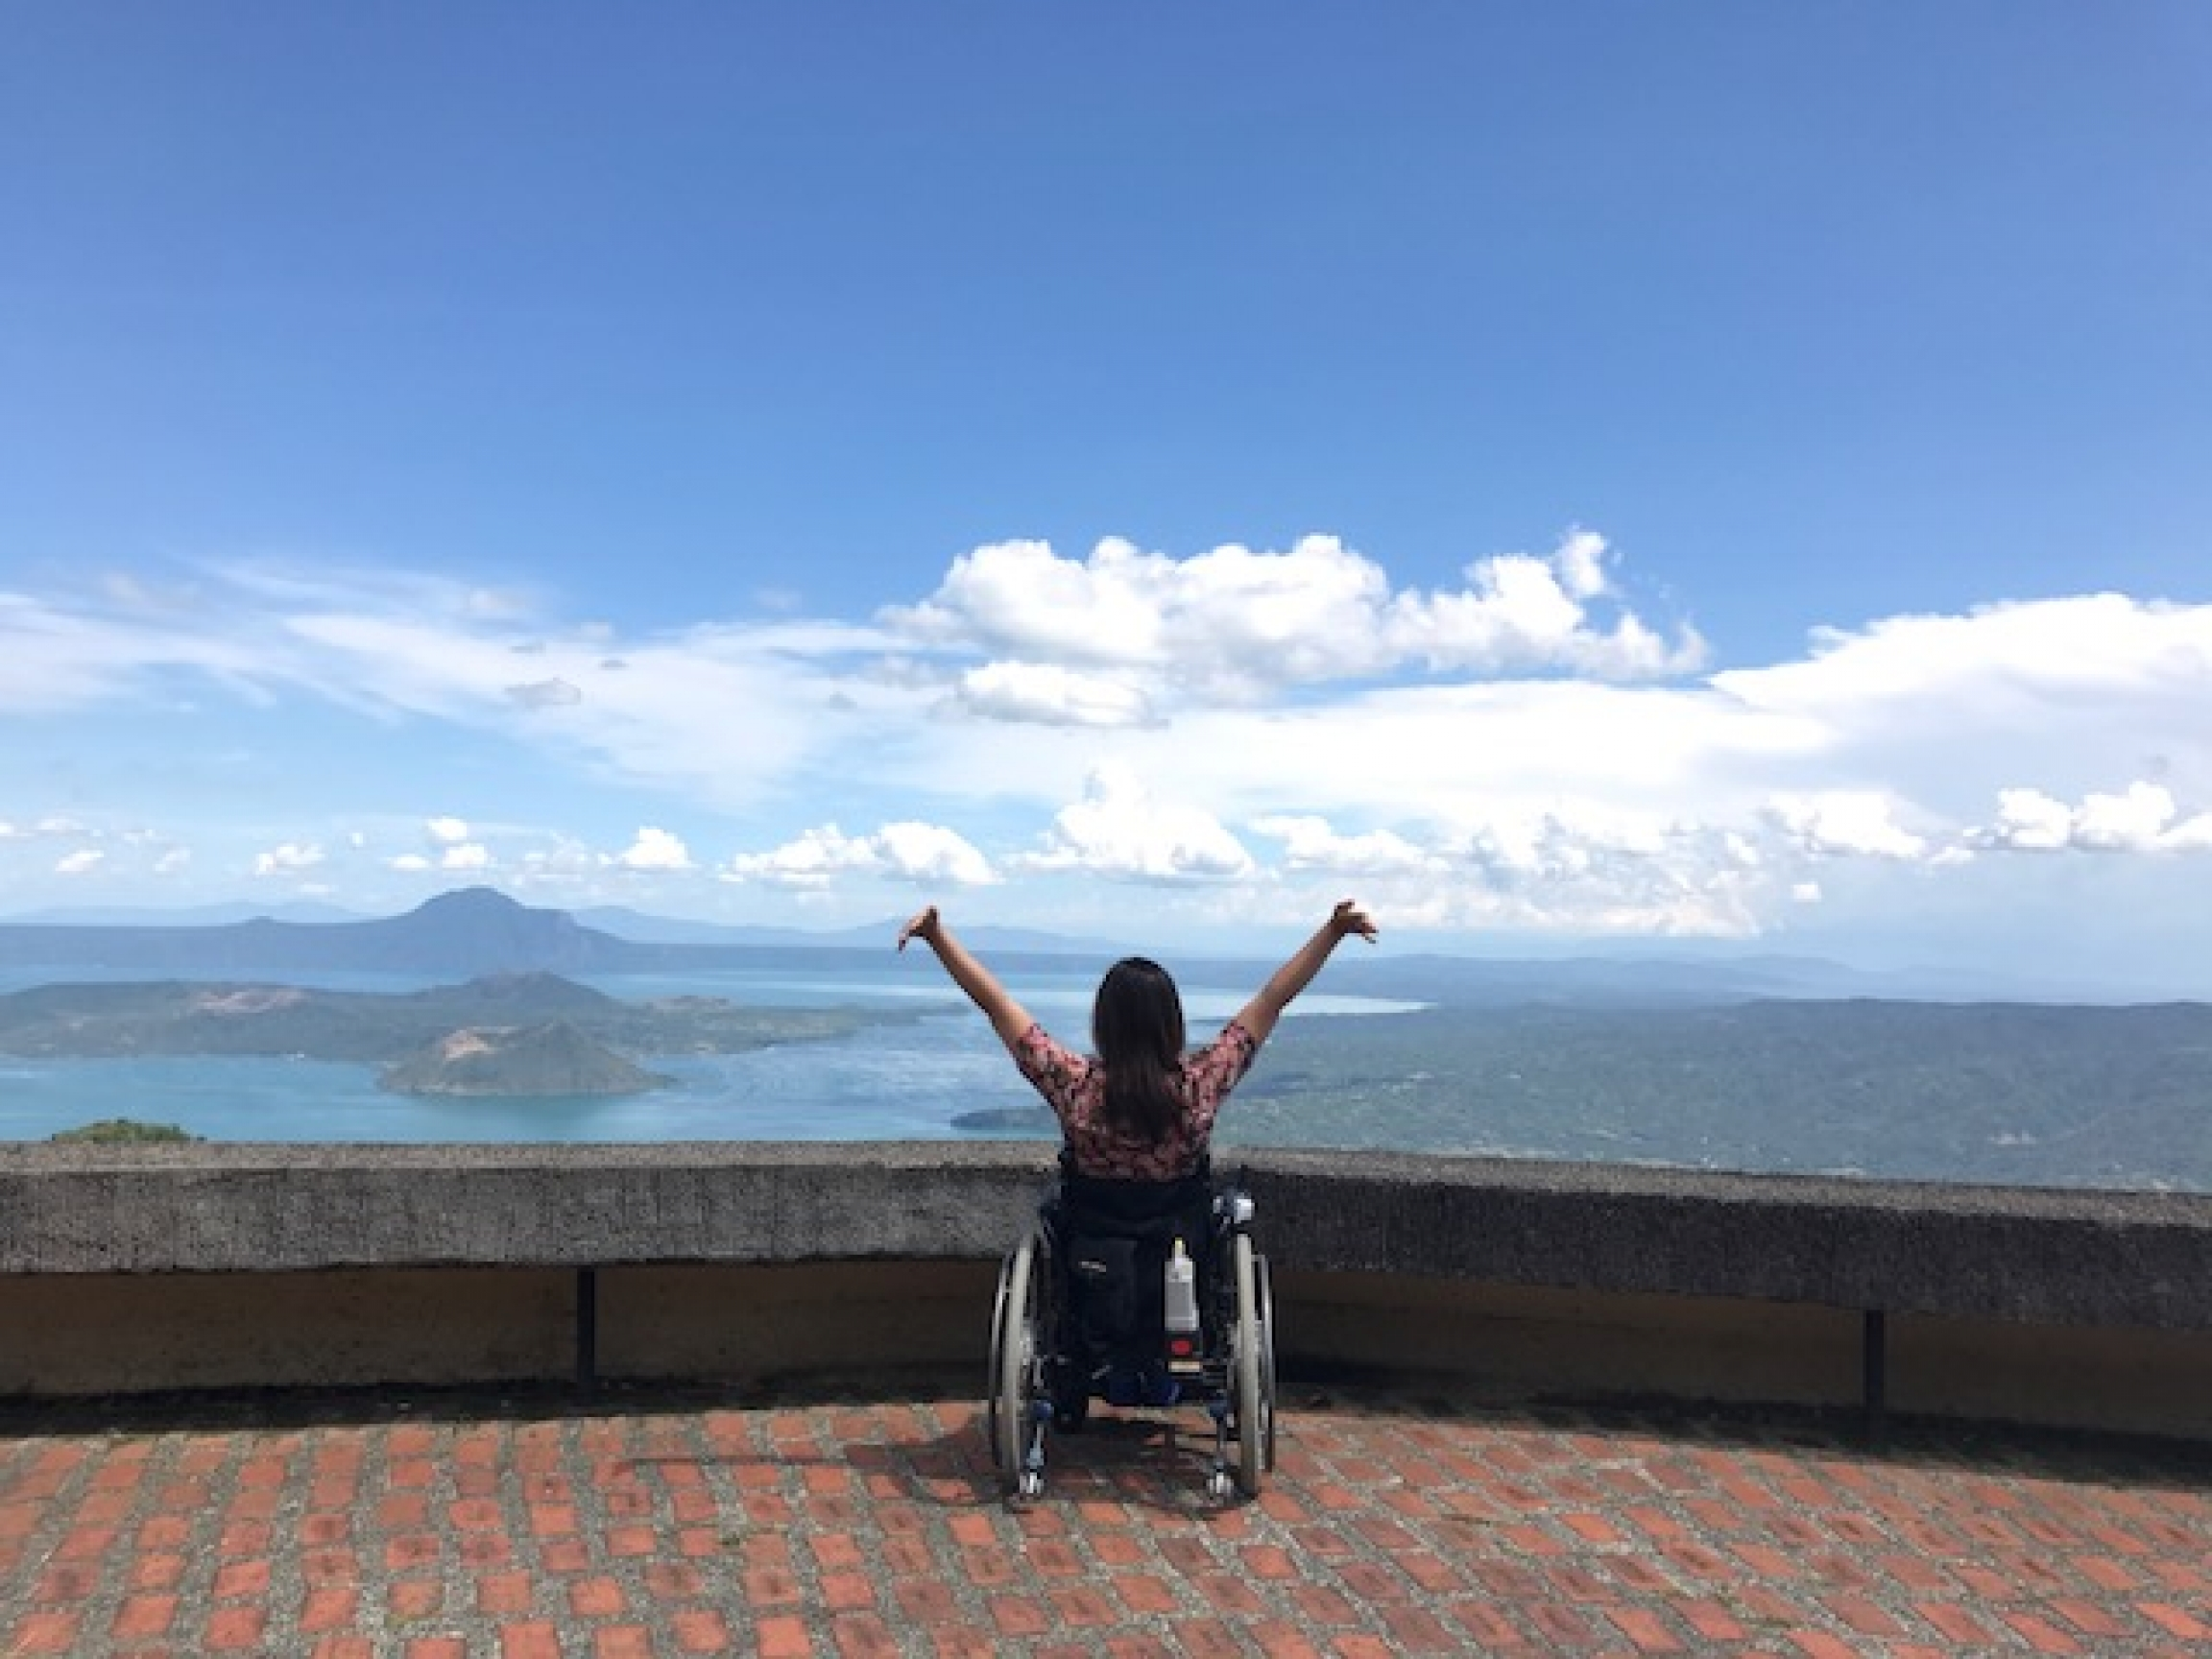 Hong Seo-yoon is a South Korean advocate for accessible tourism